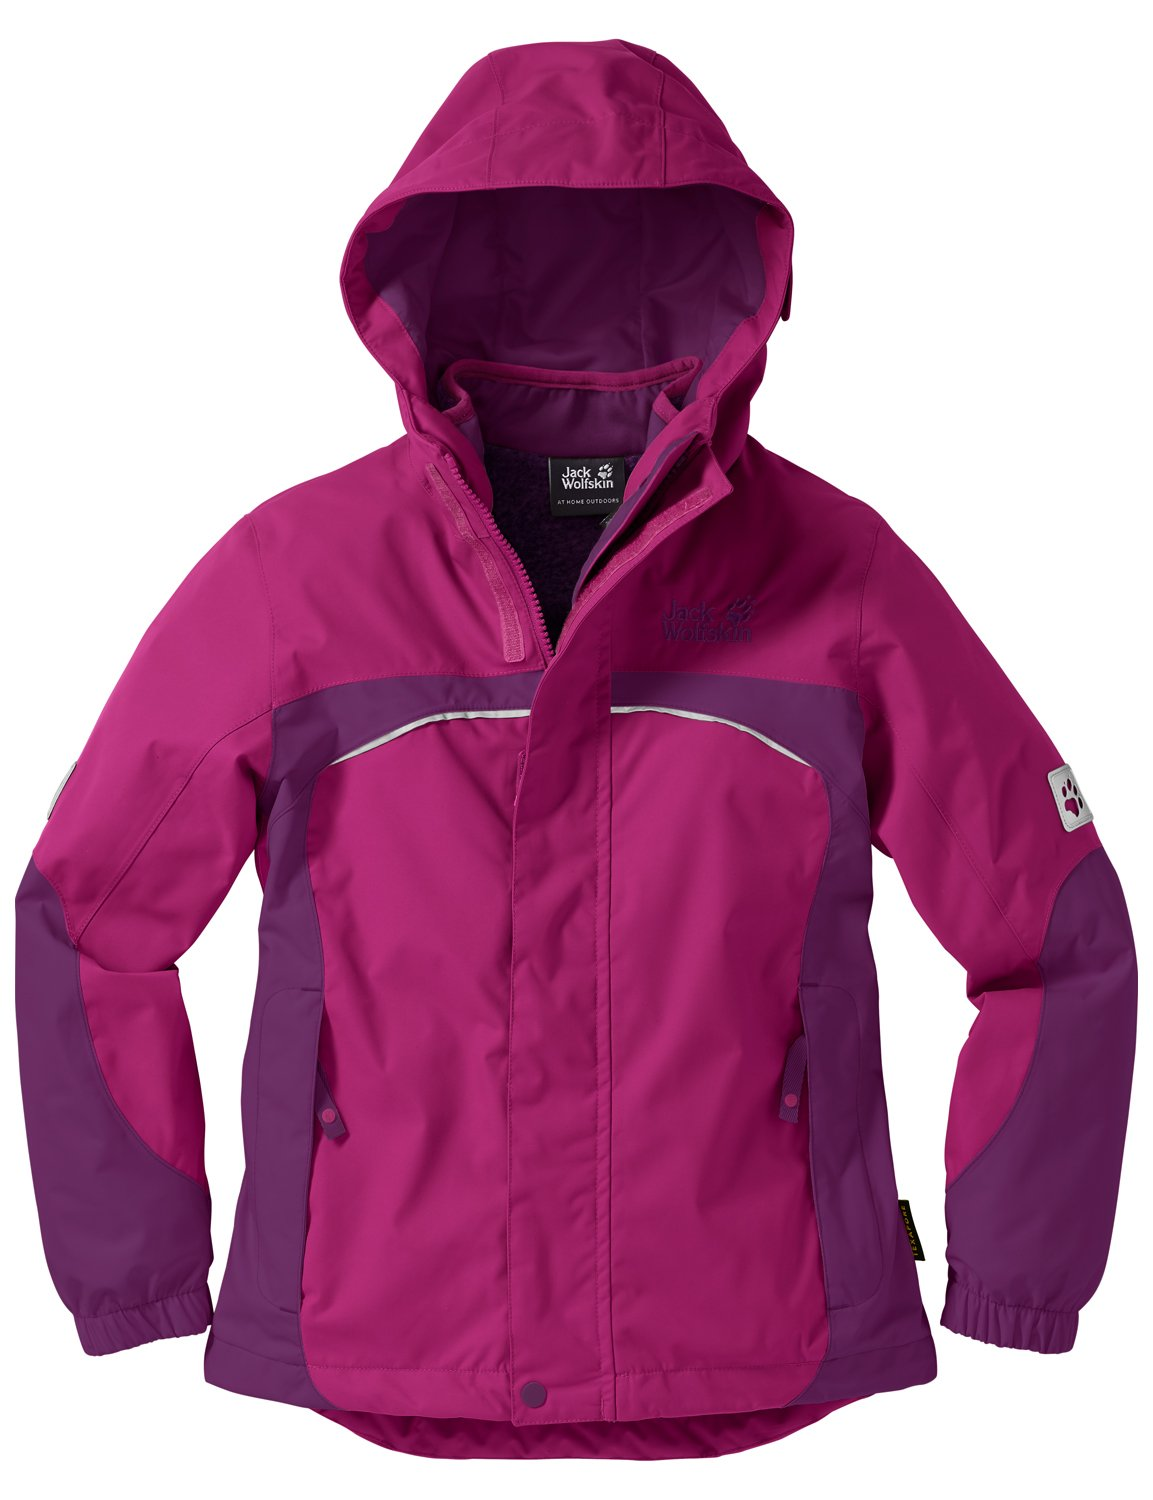 Jack Wolfskin Mädchen 3-in-1 Jacke Girls Topaz Winter Jacket